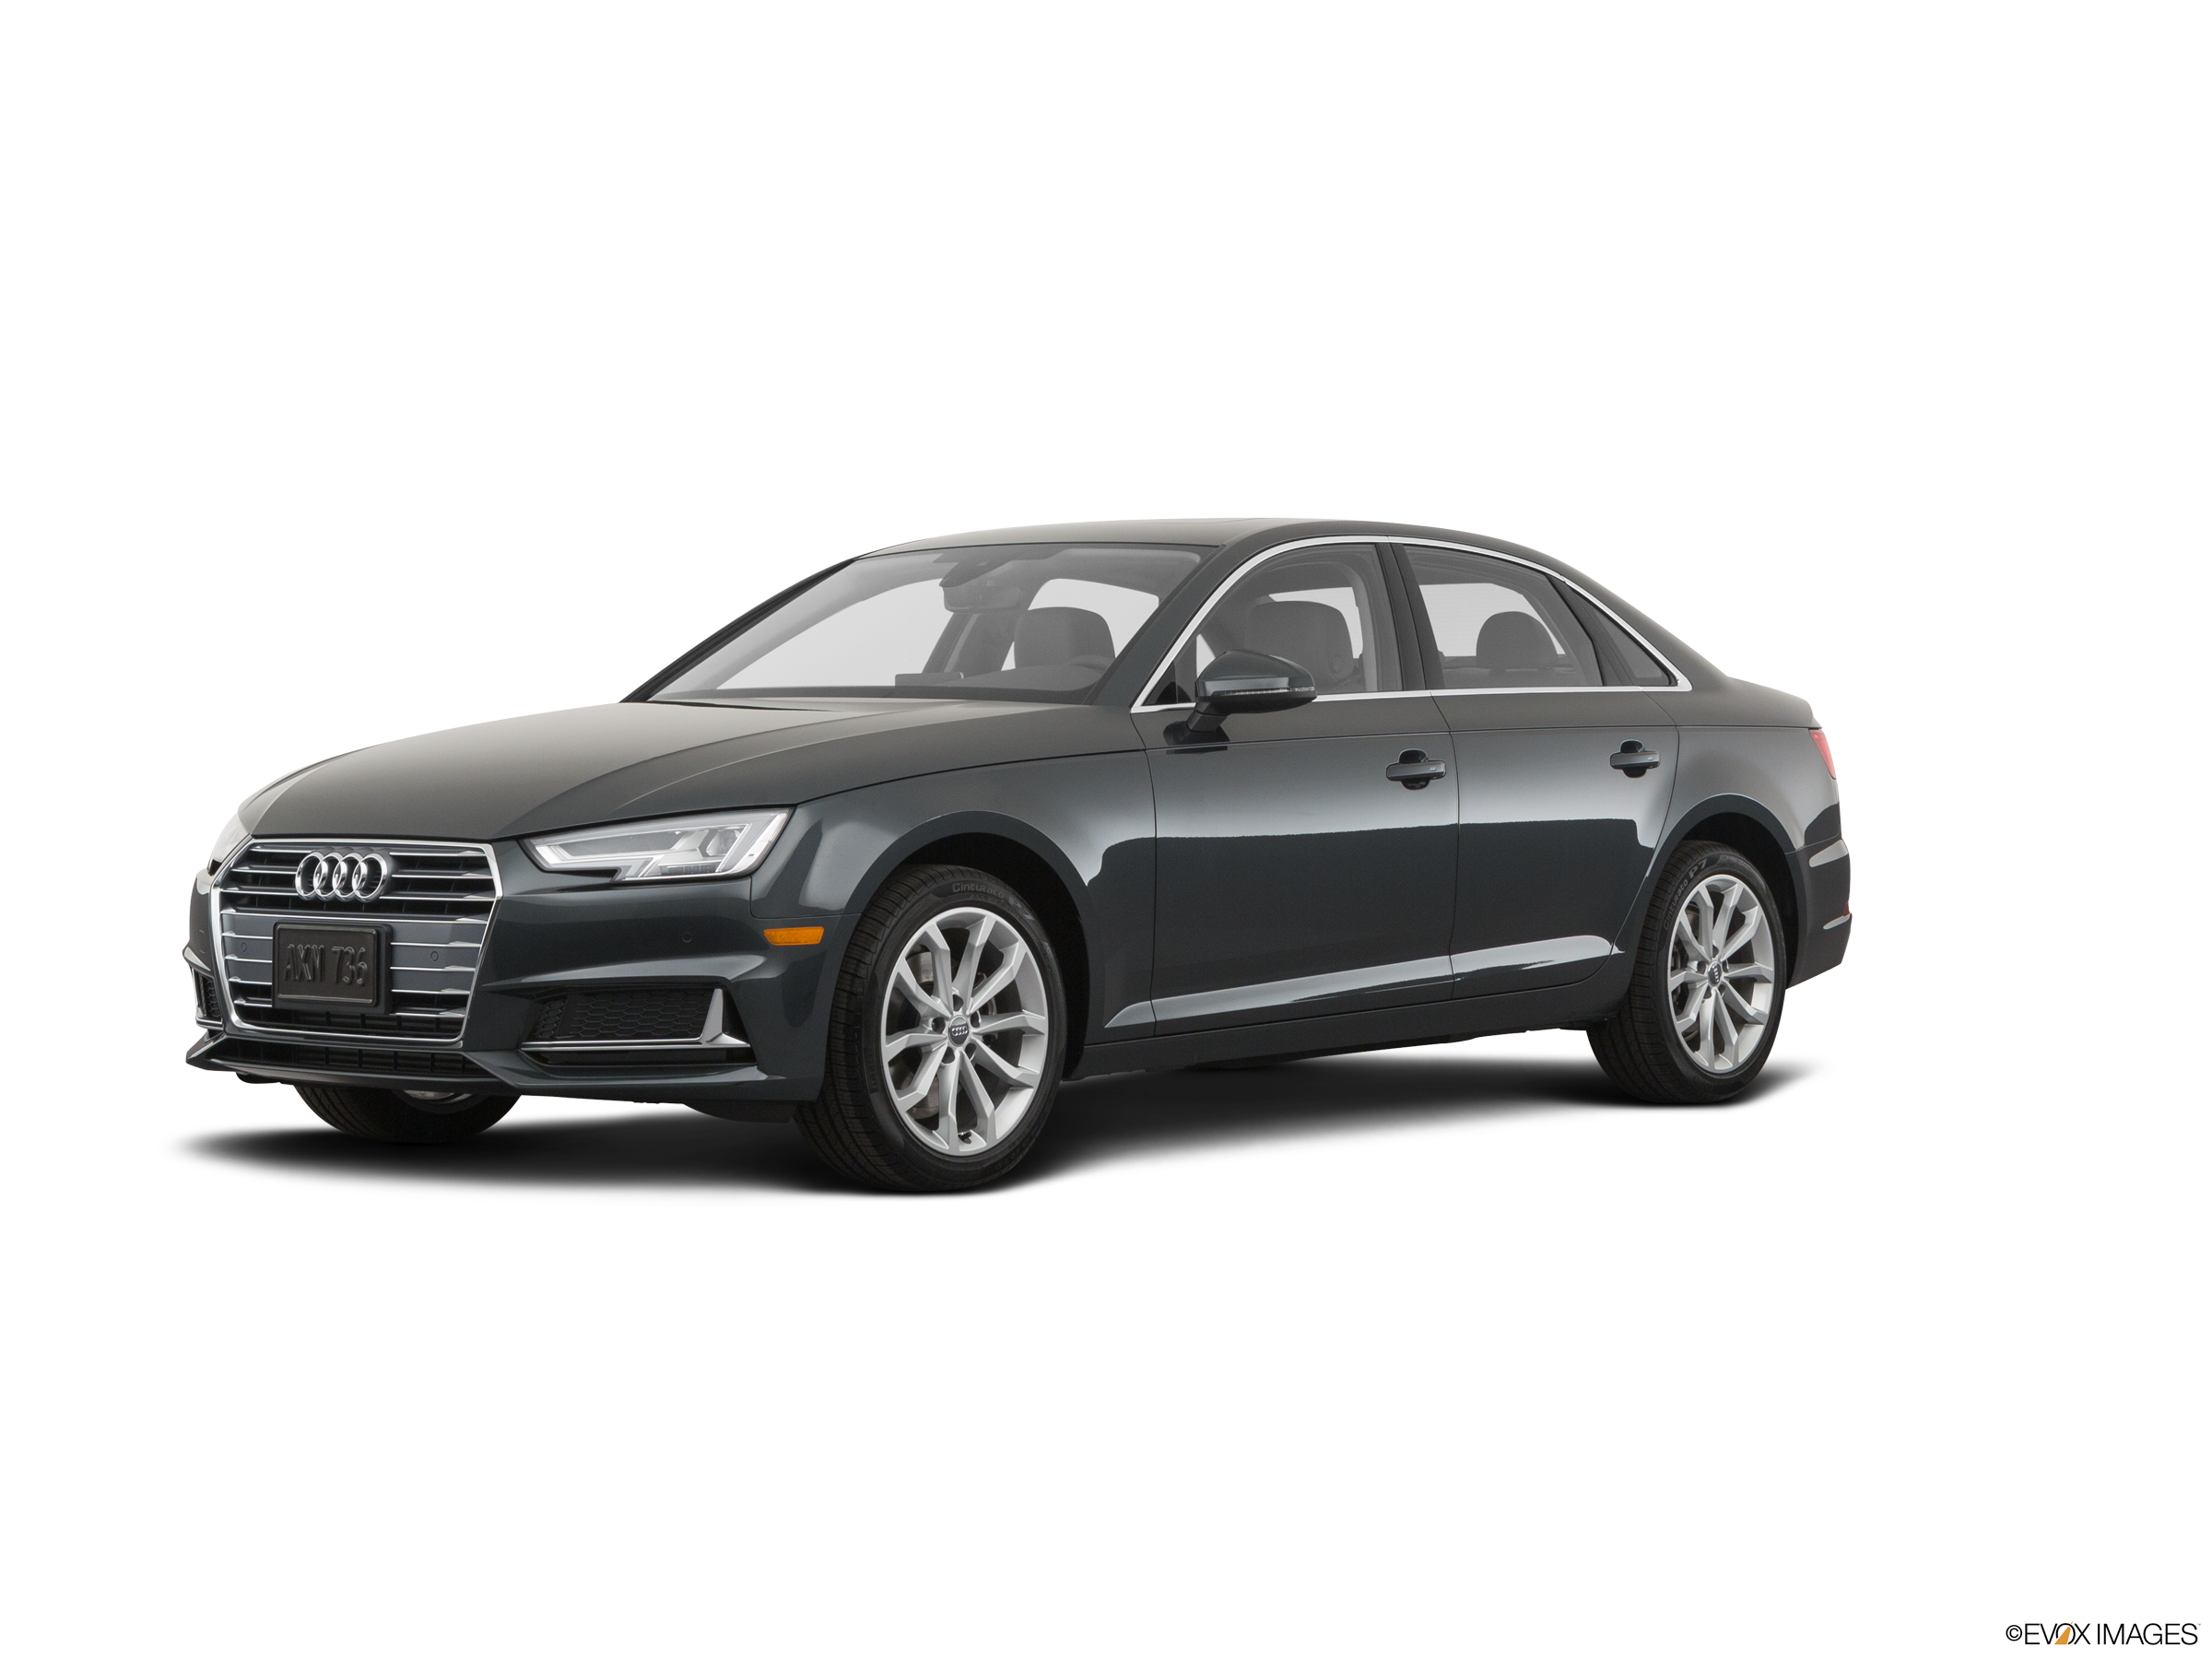 2019 Audi Q4 USA Release Date And Price >> 2019 Audi A4 Pricing Ratings Expert Review Kelley Blue